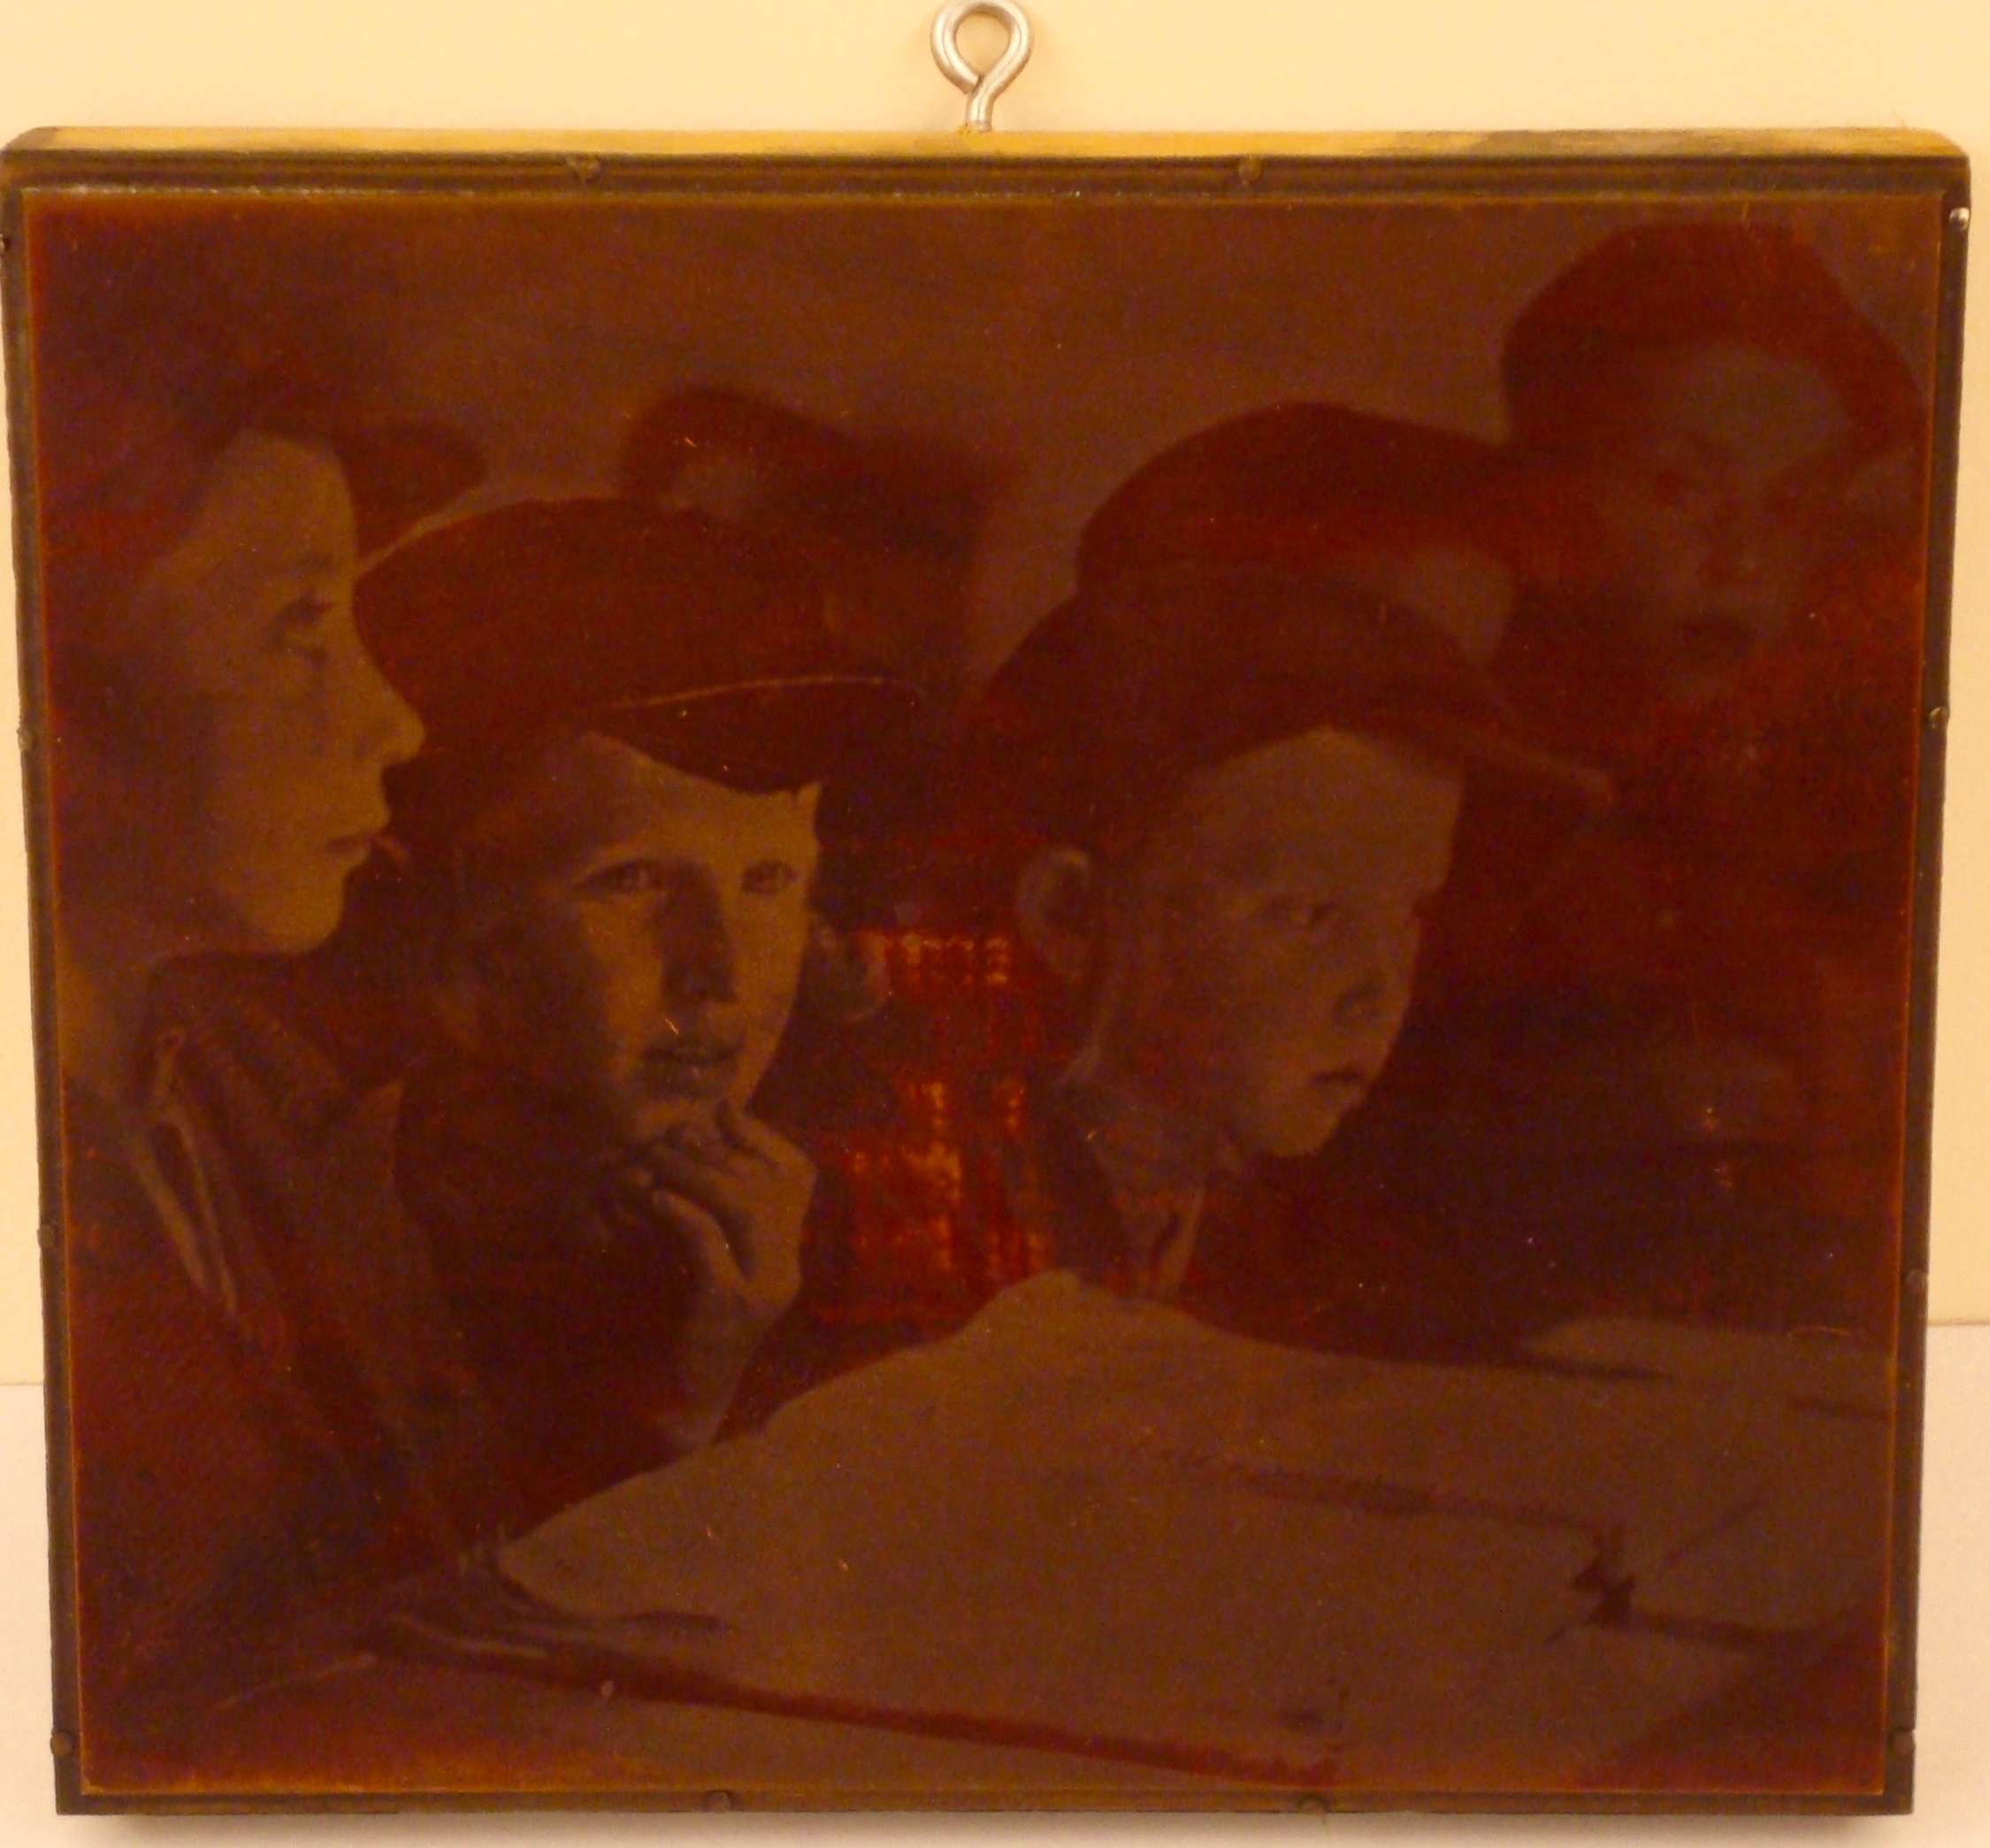 Photoplate featuring 1938 Roman Vishniac photograph depicting young boys sitting around a large book